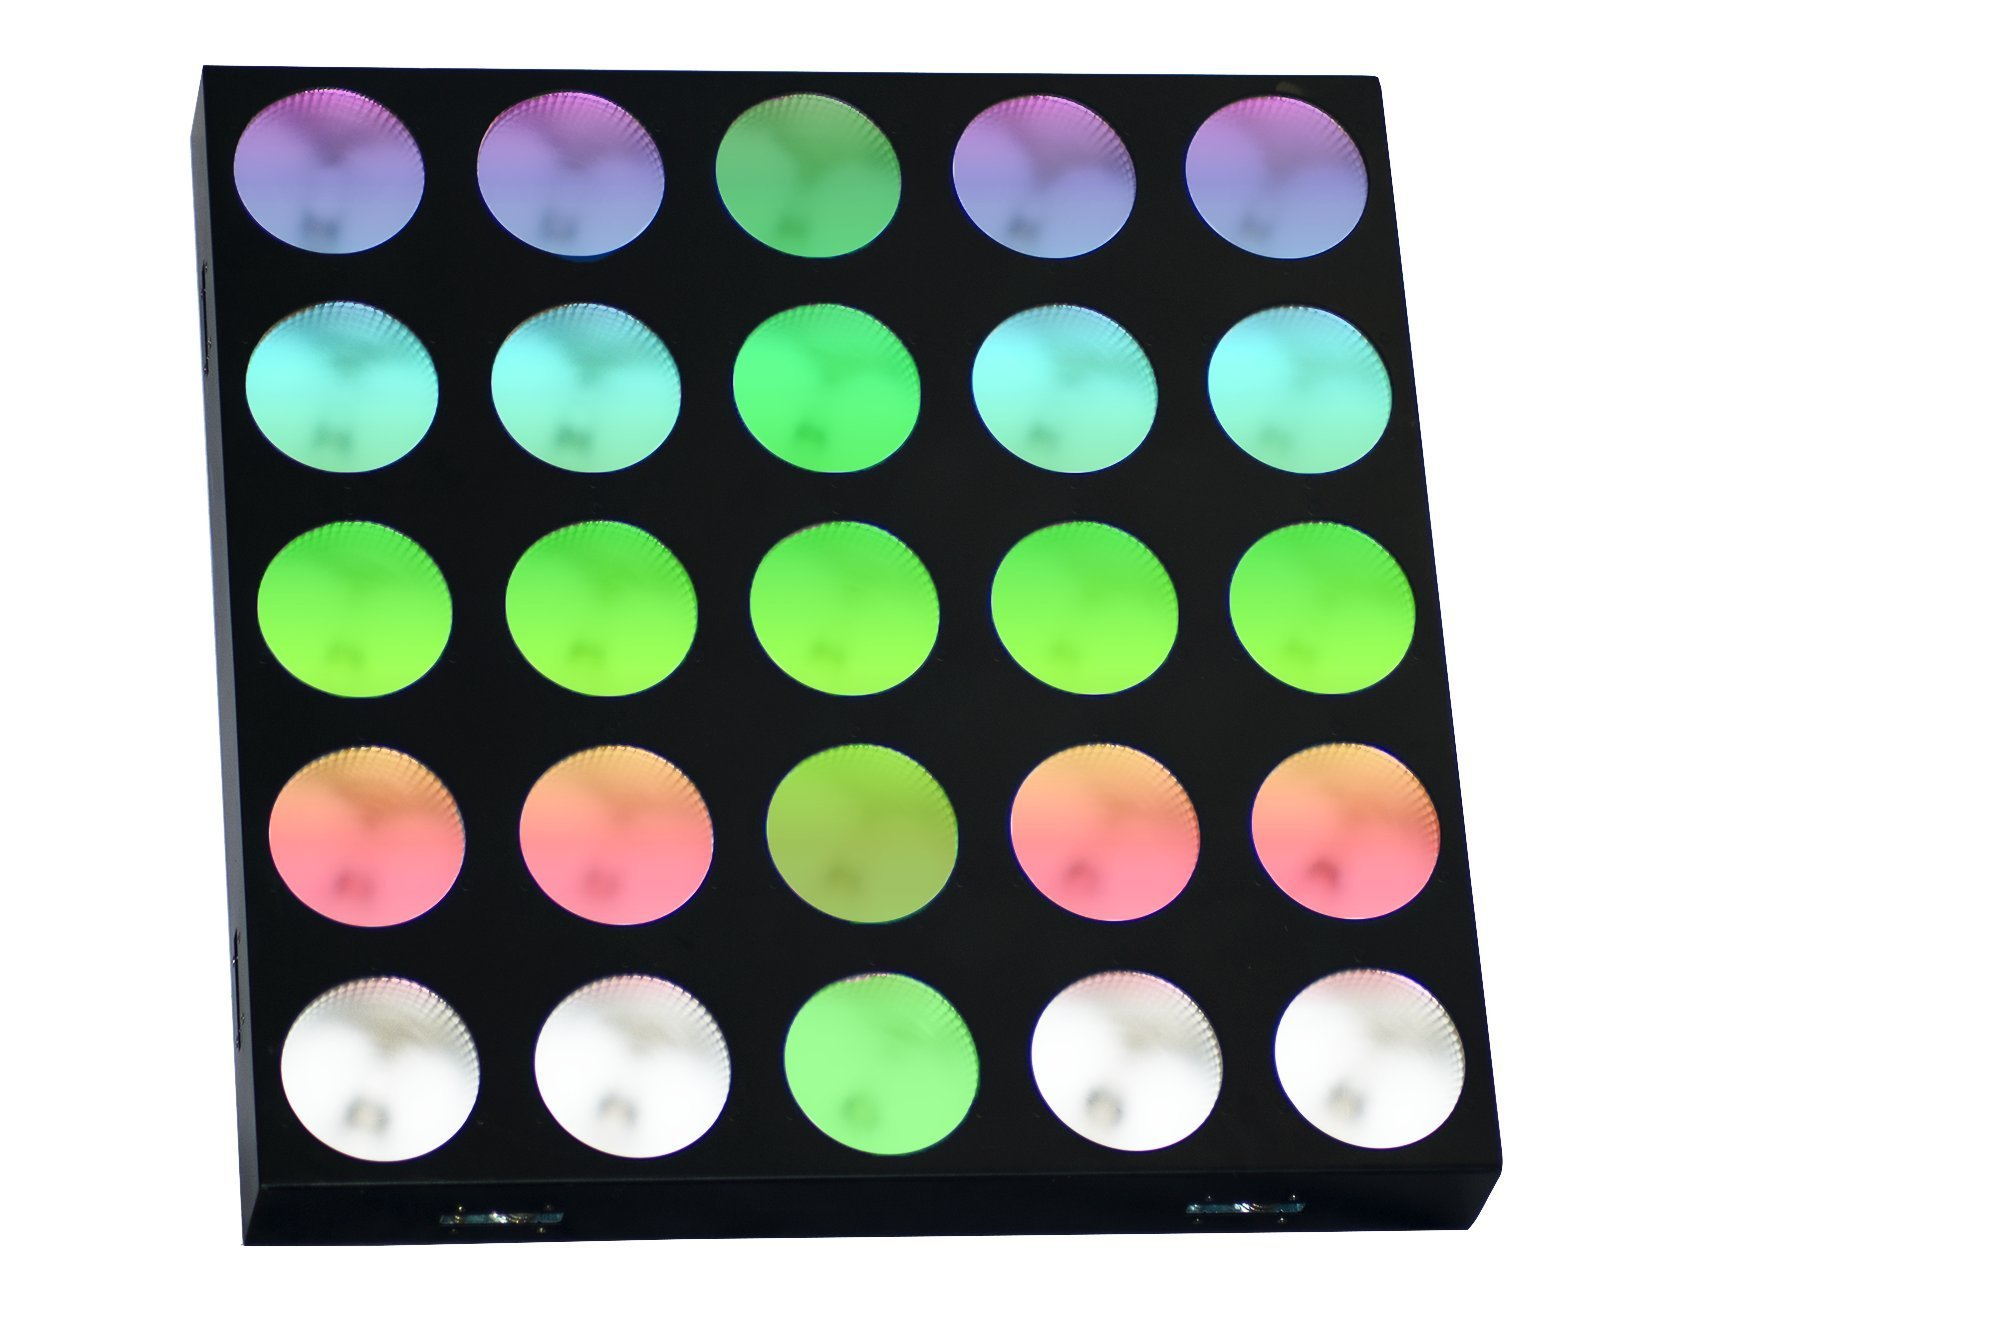 Rasha Professional RPAS Matrix Gar LED Wash Panel Combined of 25 Small Multicolored Lights with Built-In Dynamic and Static Patterns+ A Year Warranty, Black